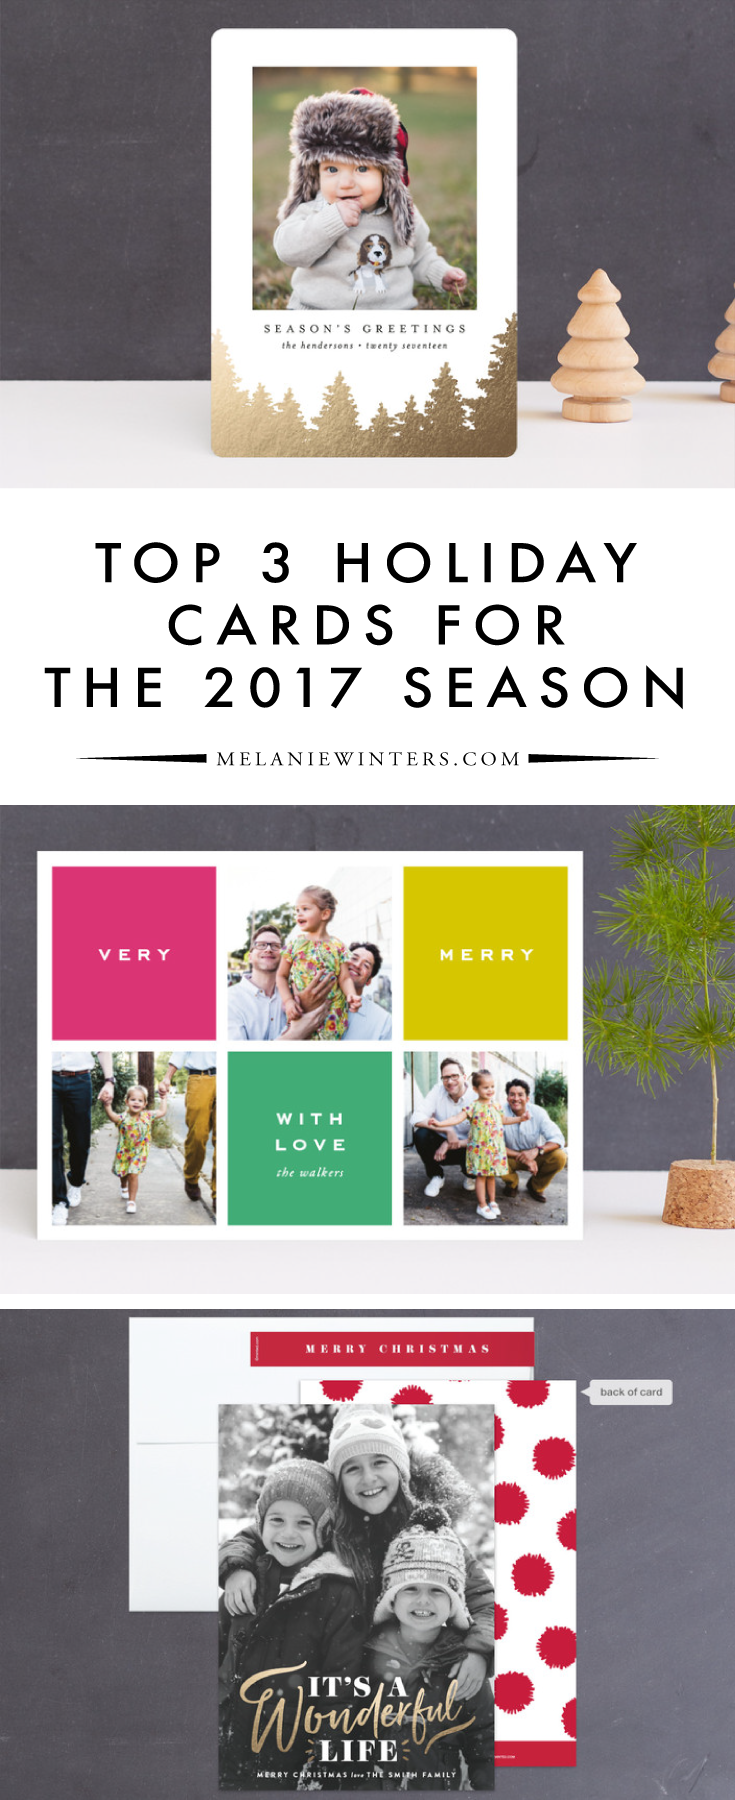 There's something for everyone when you browse Minted's wide array of holiday cards! Our top picks span three very different styles from classic to contemporary.